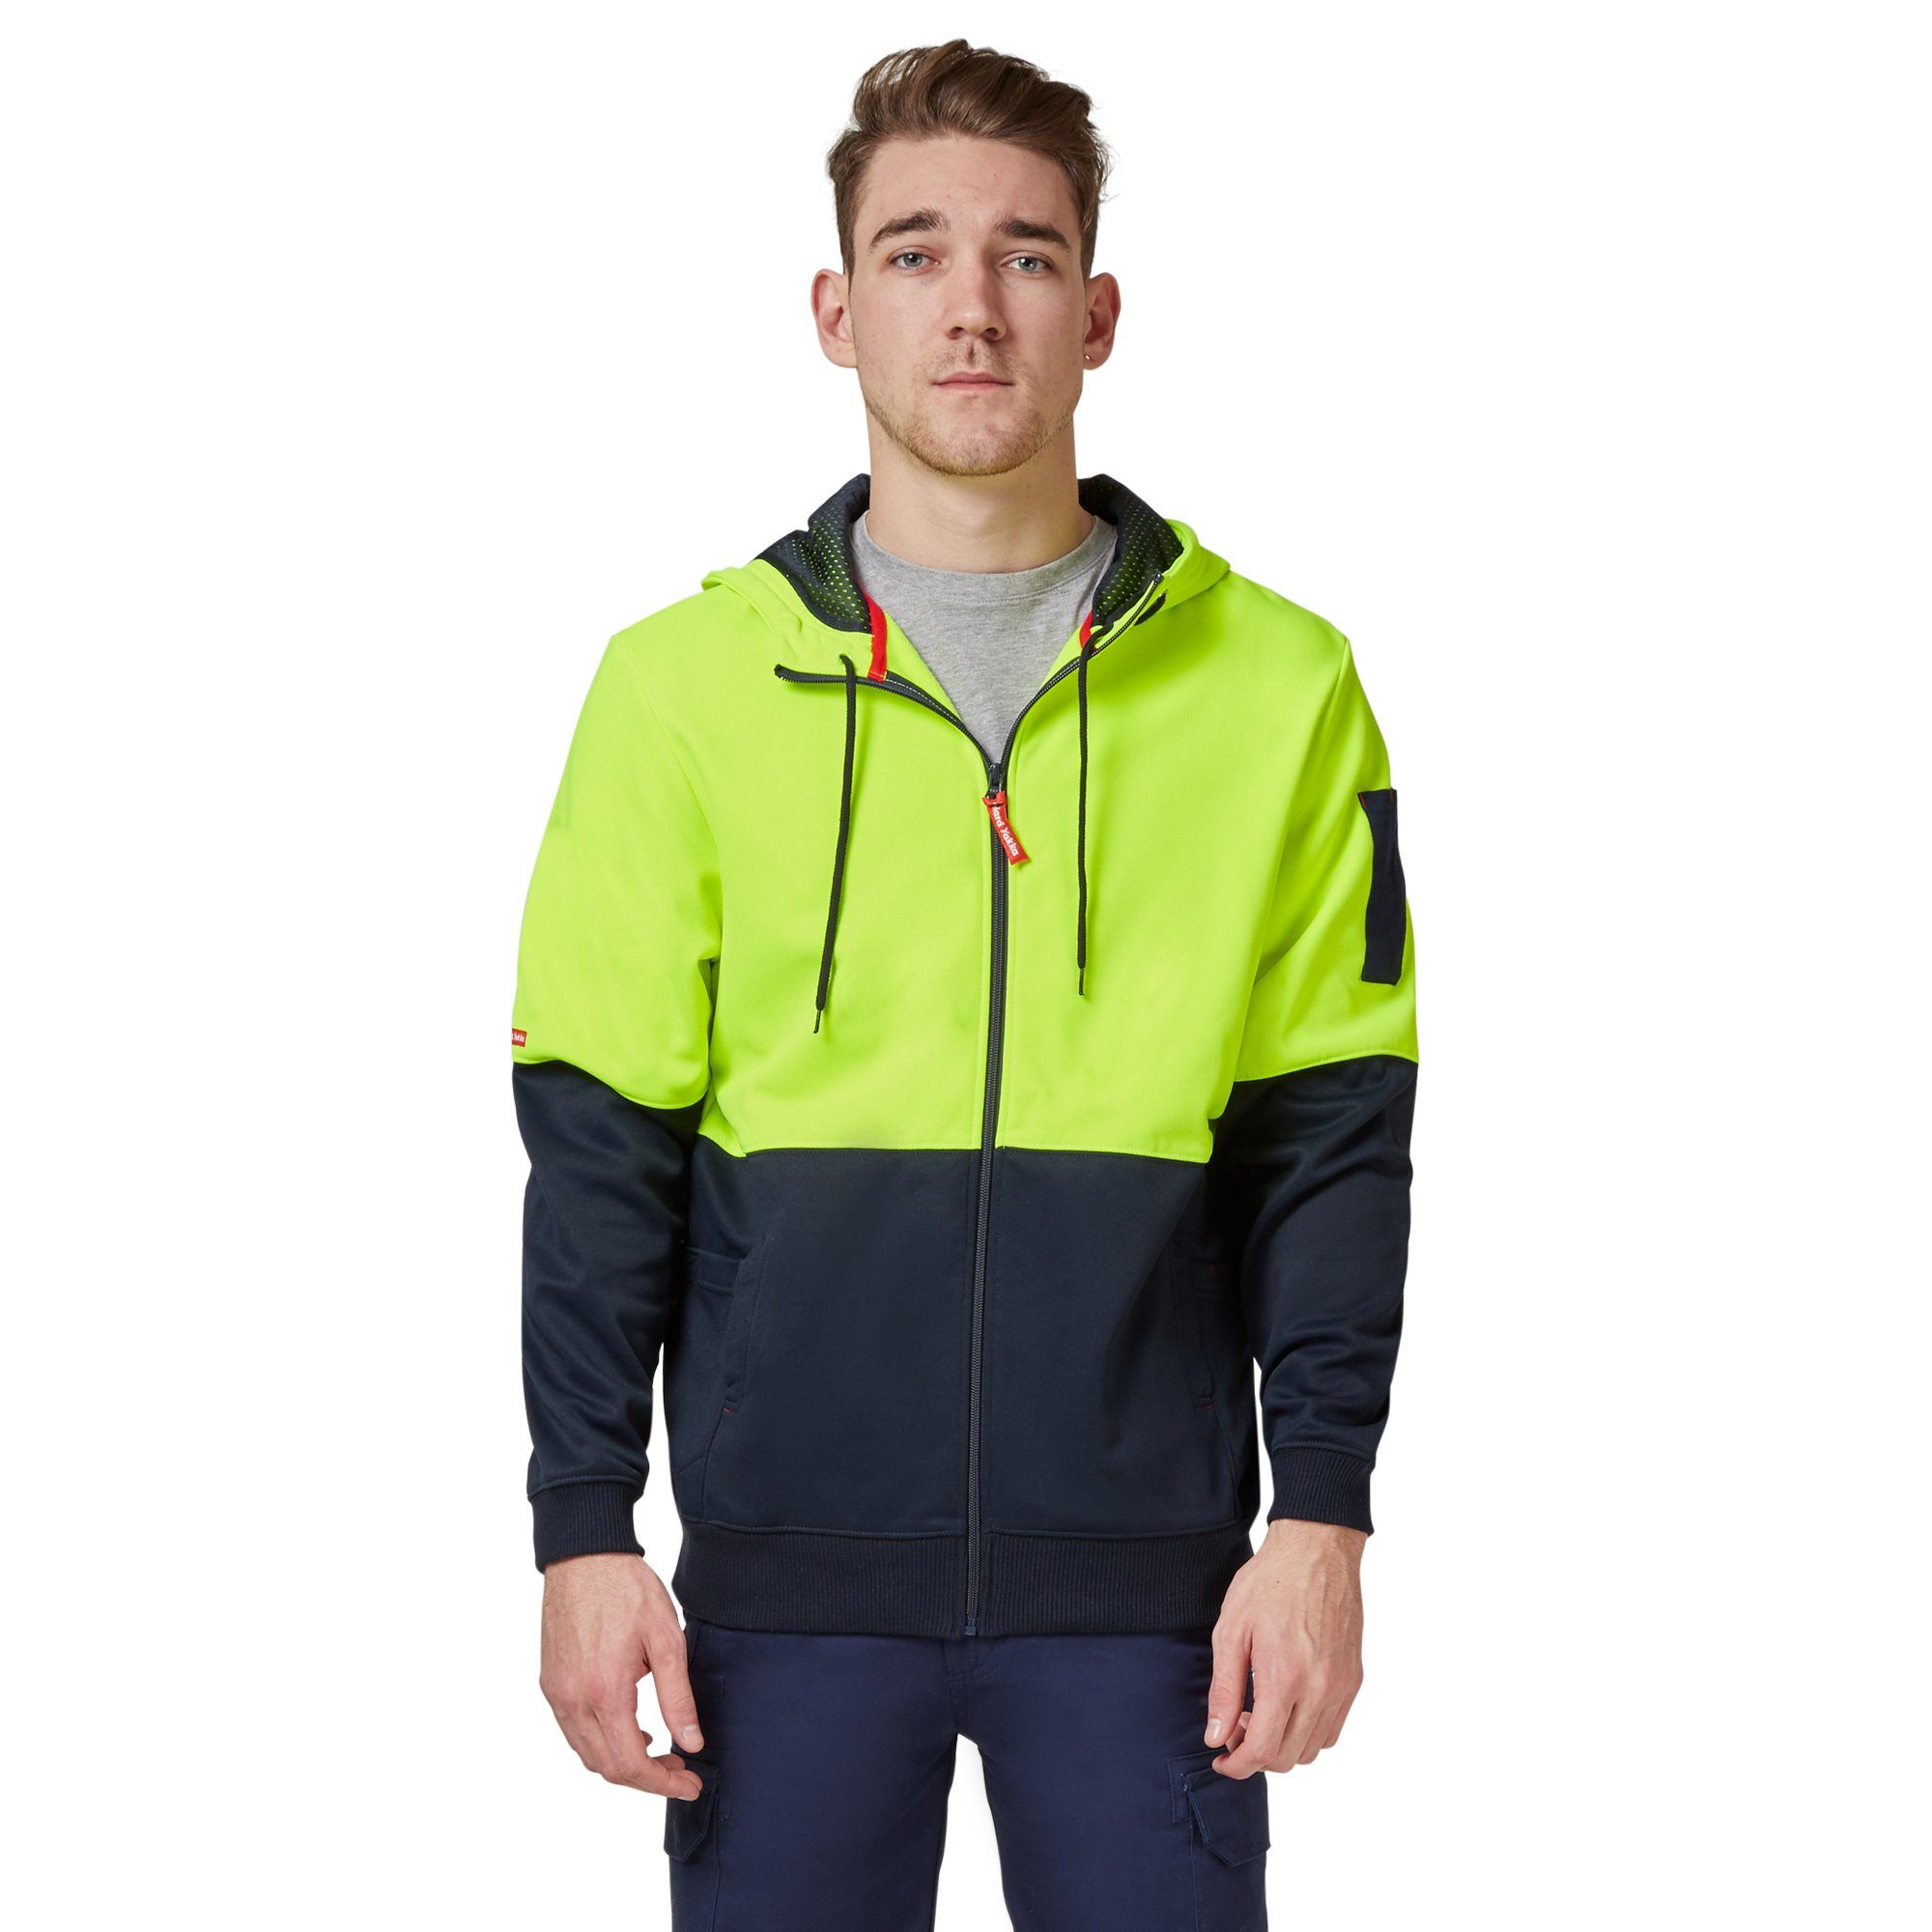 Hard Yakka Y19327 Hi-Vis Two Tone Brushed Fleece Full Zip Hoodie - Yellow/Navy Workwear Isbister & Co Wholesale